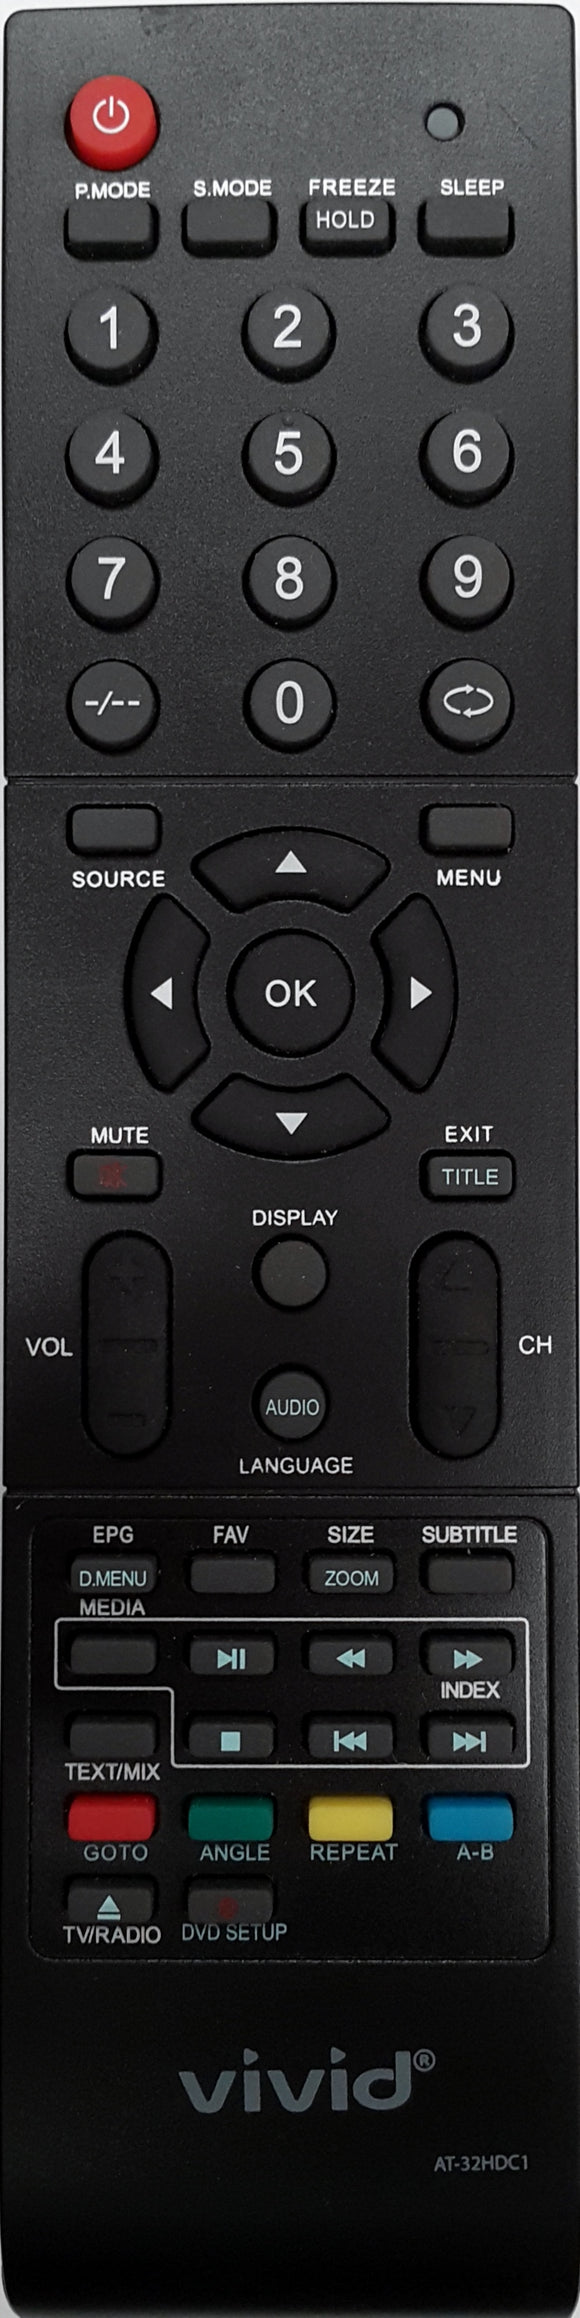 ORIGINAL VIVID REMOTE CONTROL - AT32HDC1 LCD TV